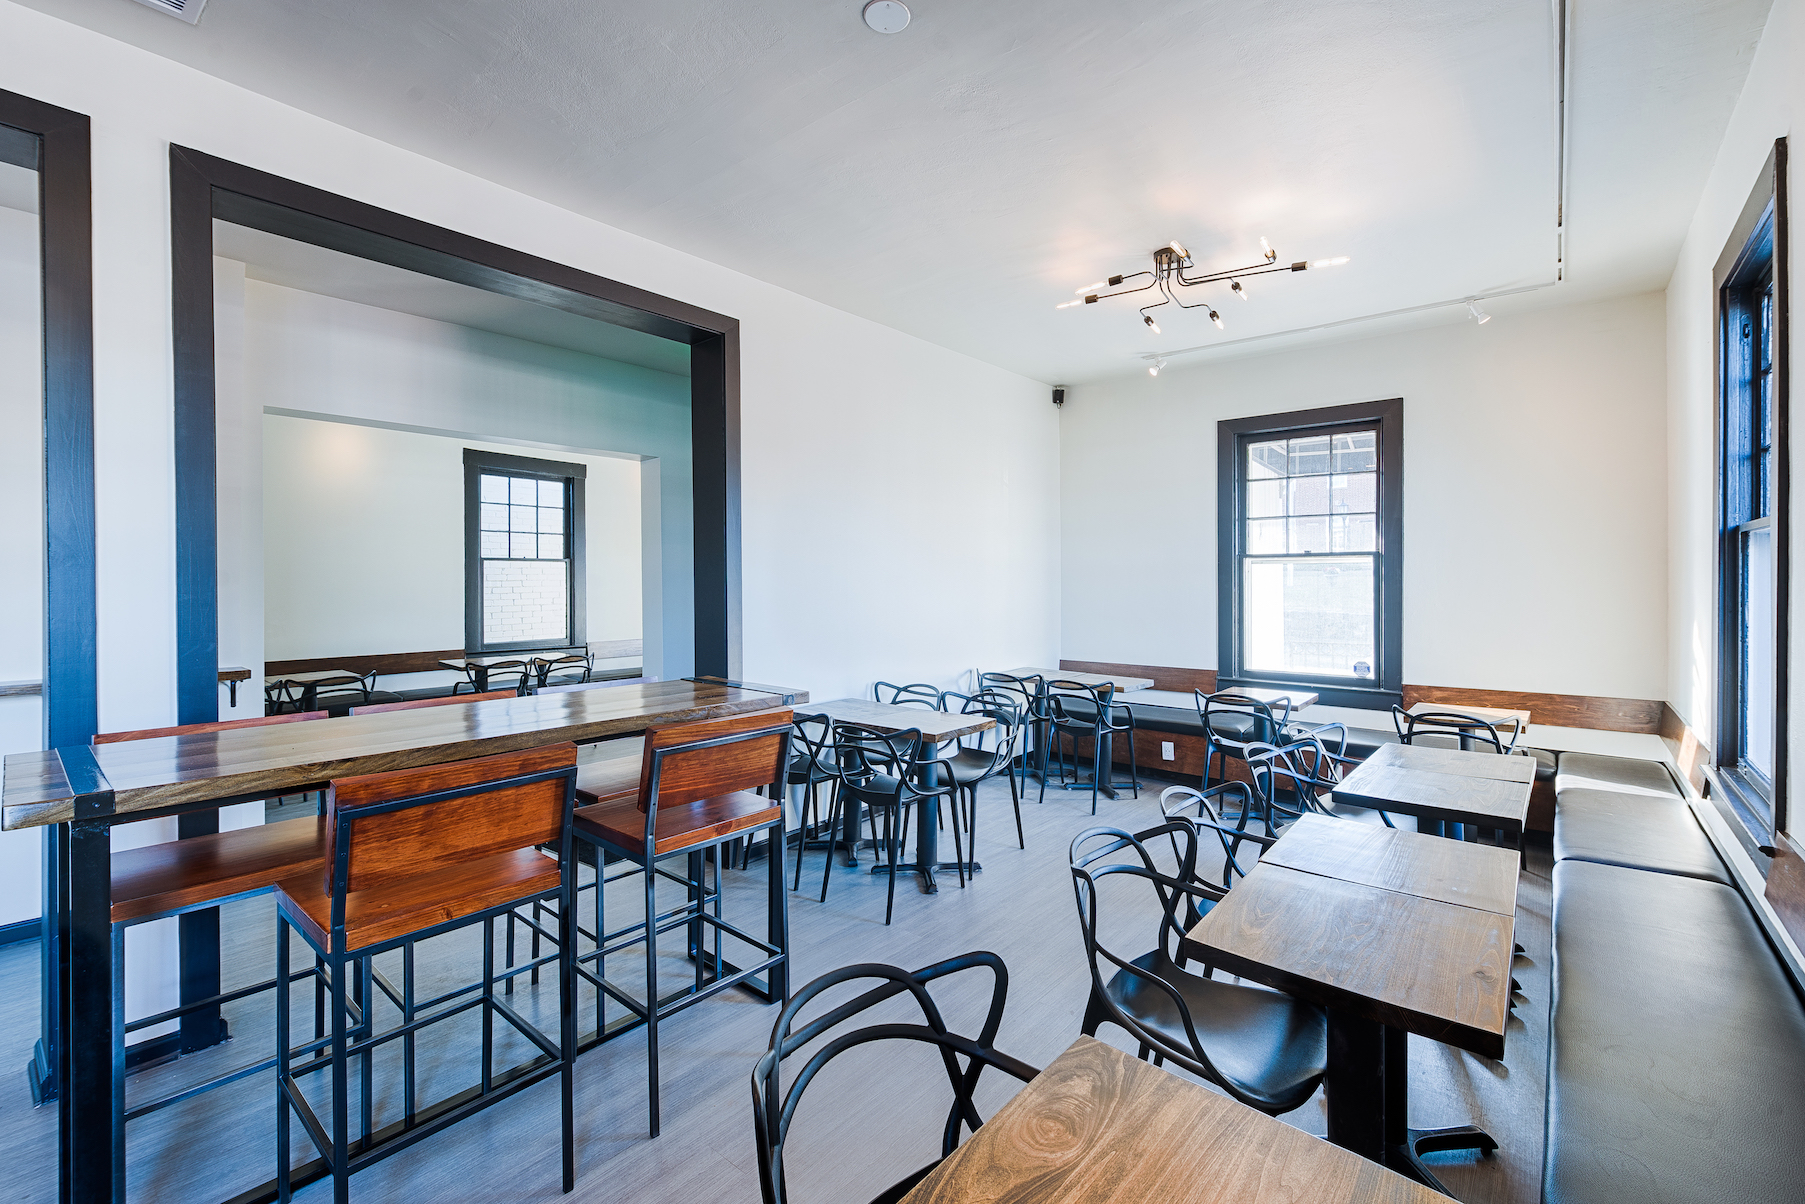 Main dining area - With the combination of high top tables and regular seatings, this open space dining room highlights the historic building with a modern and intimate touch.